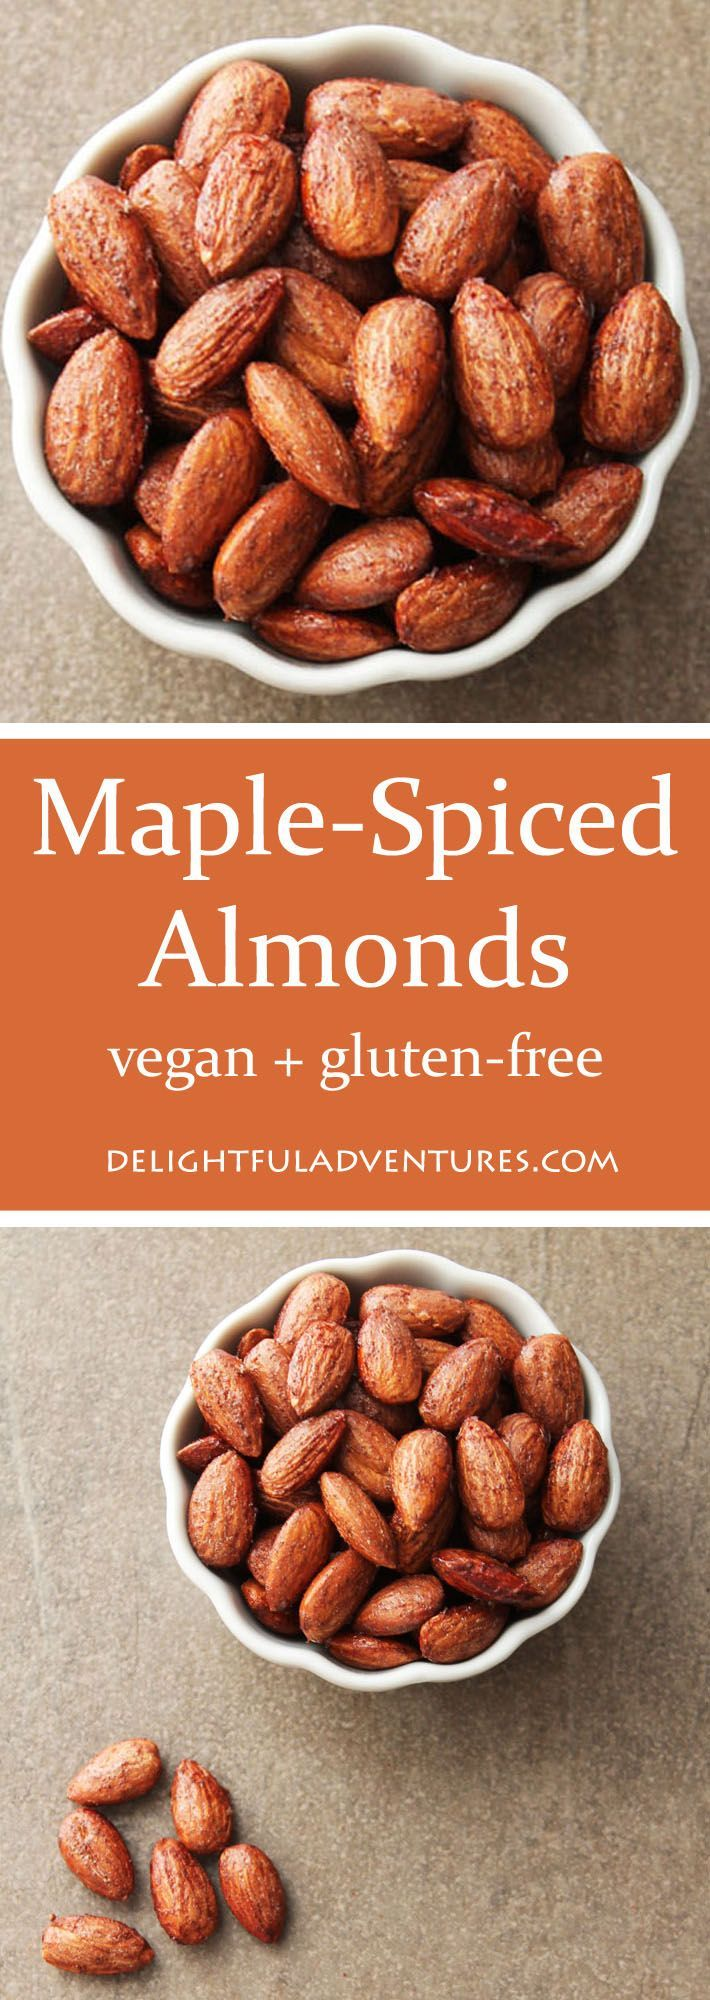 These Maple-Spiced Almonds are a quick, easy, and delicious recipe to throw together for snacks or for when you'll be entertaining guests!